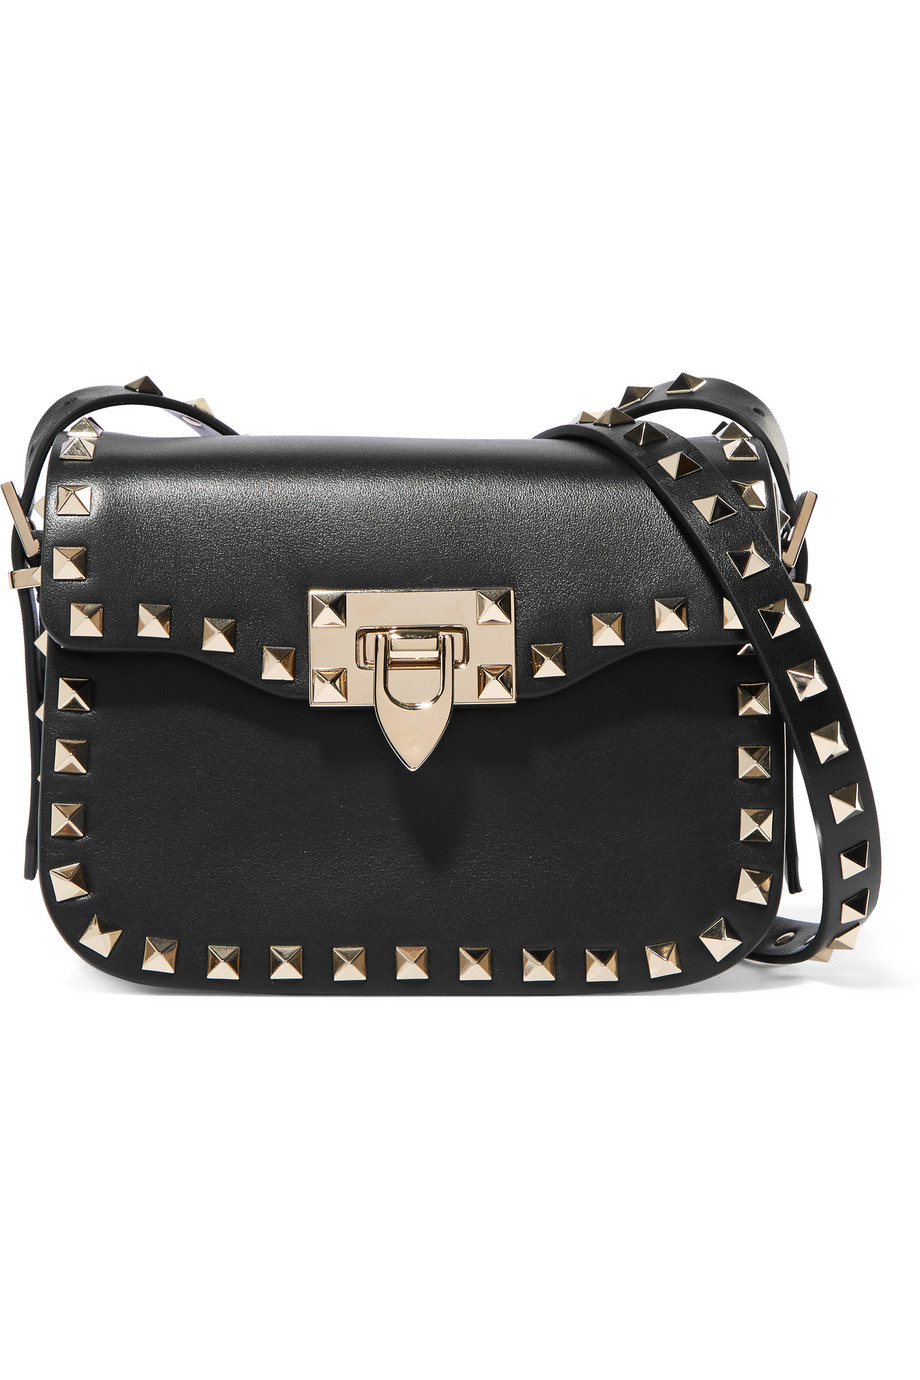 Valentino The Rockstud Leather Shoulder Bag, Black, Women's